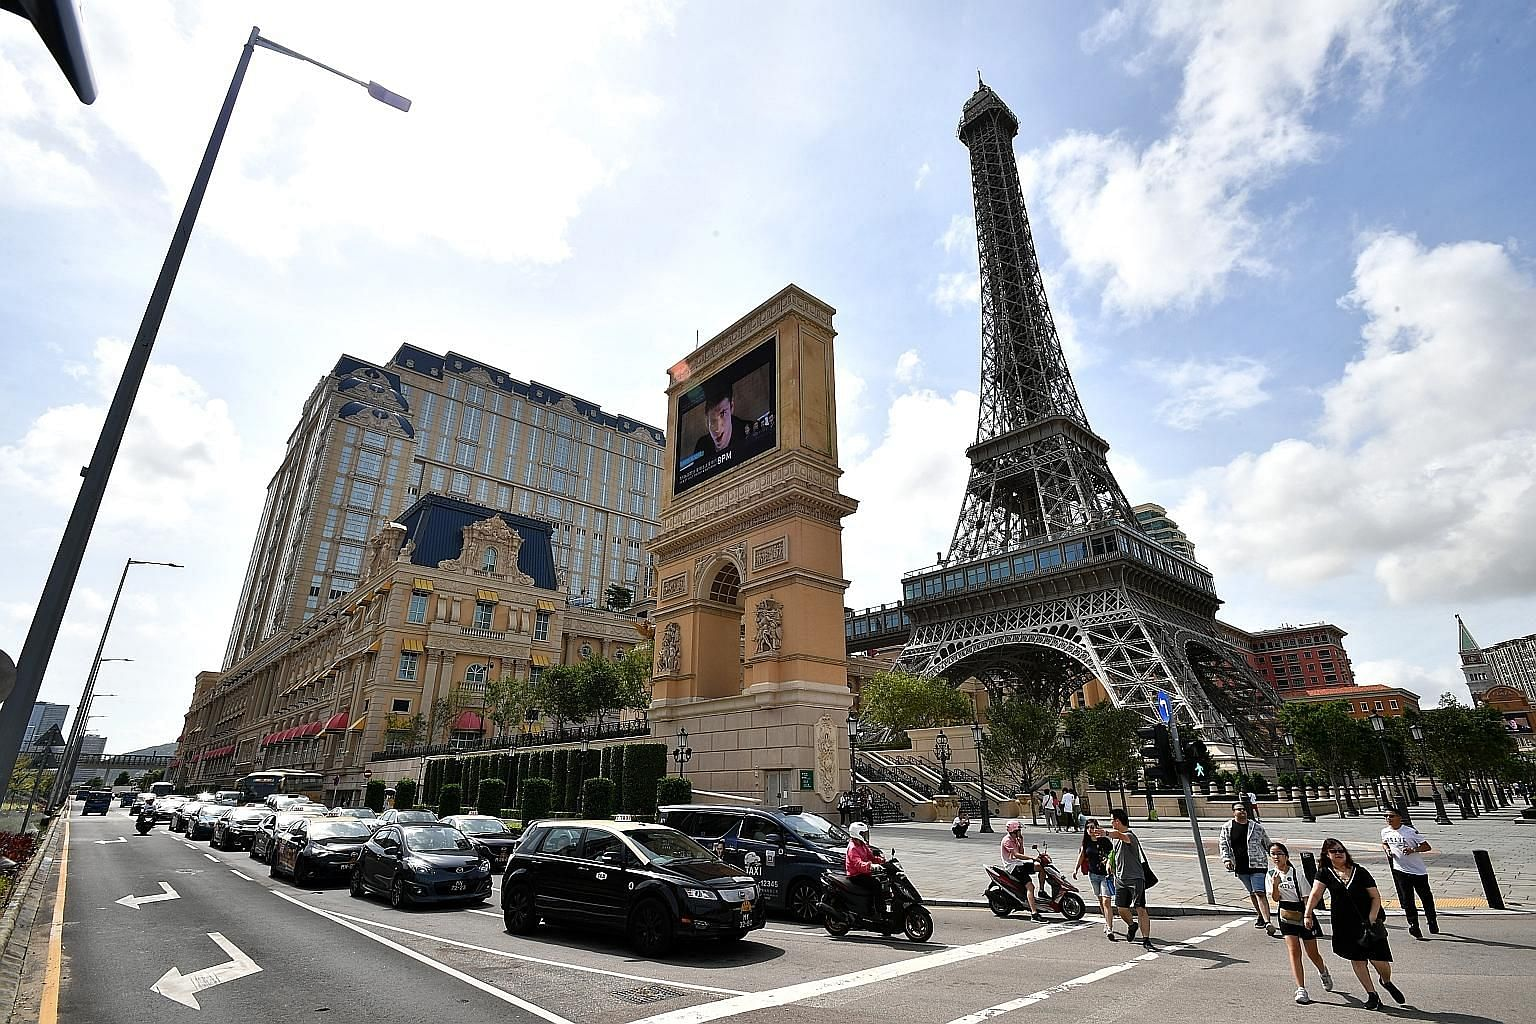 The Parisian Macao, a luxury hotel in the Cotai area of Macau which is owned by Las Vegas Sands. It has a half-scale Eiffel Tower as one of its landmarks.